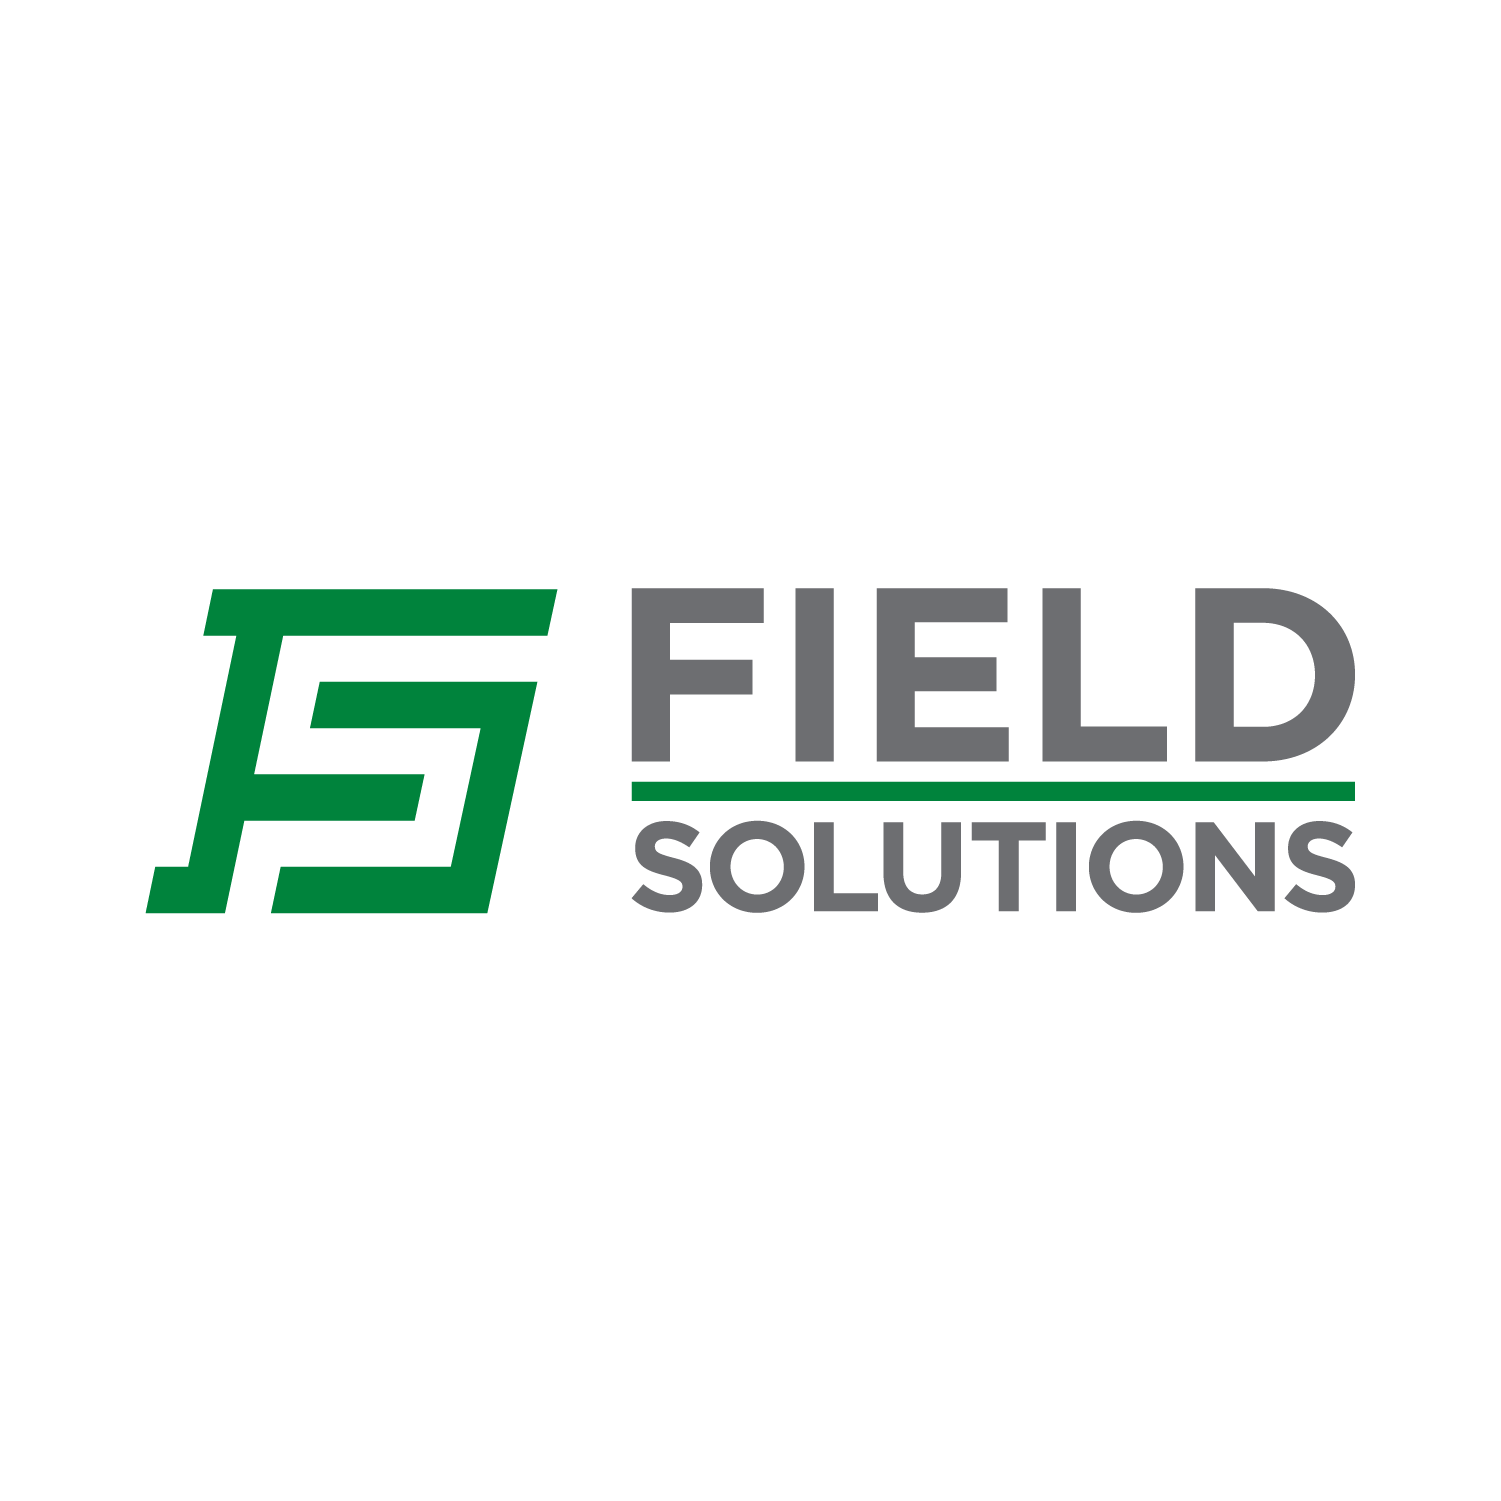 Field-01.png